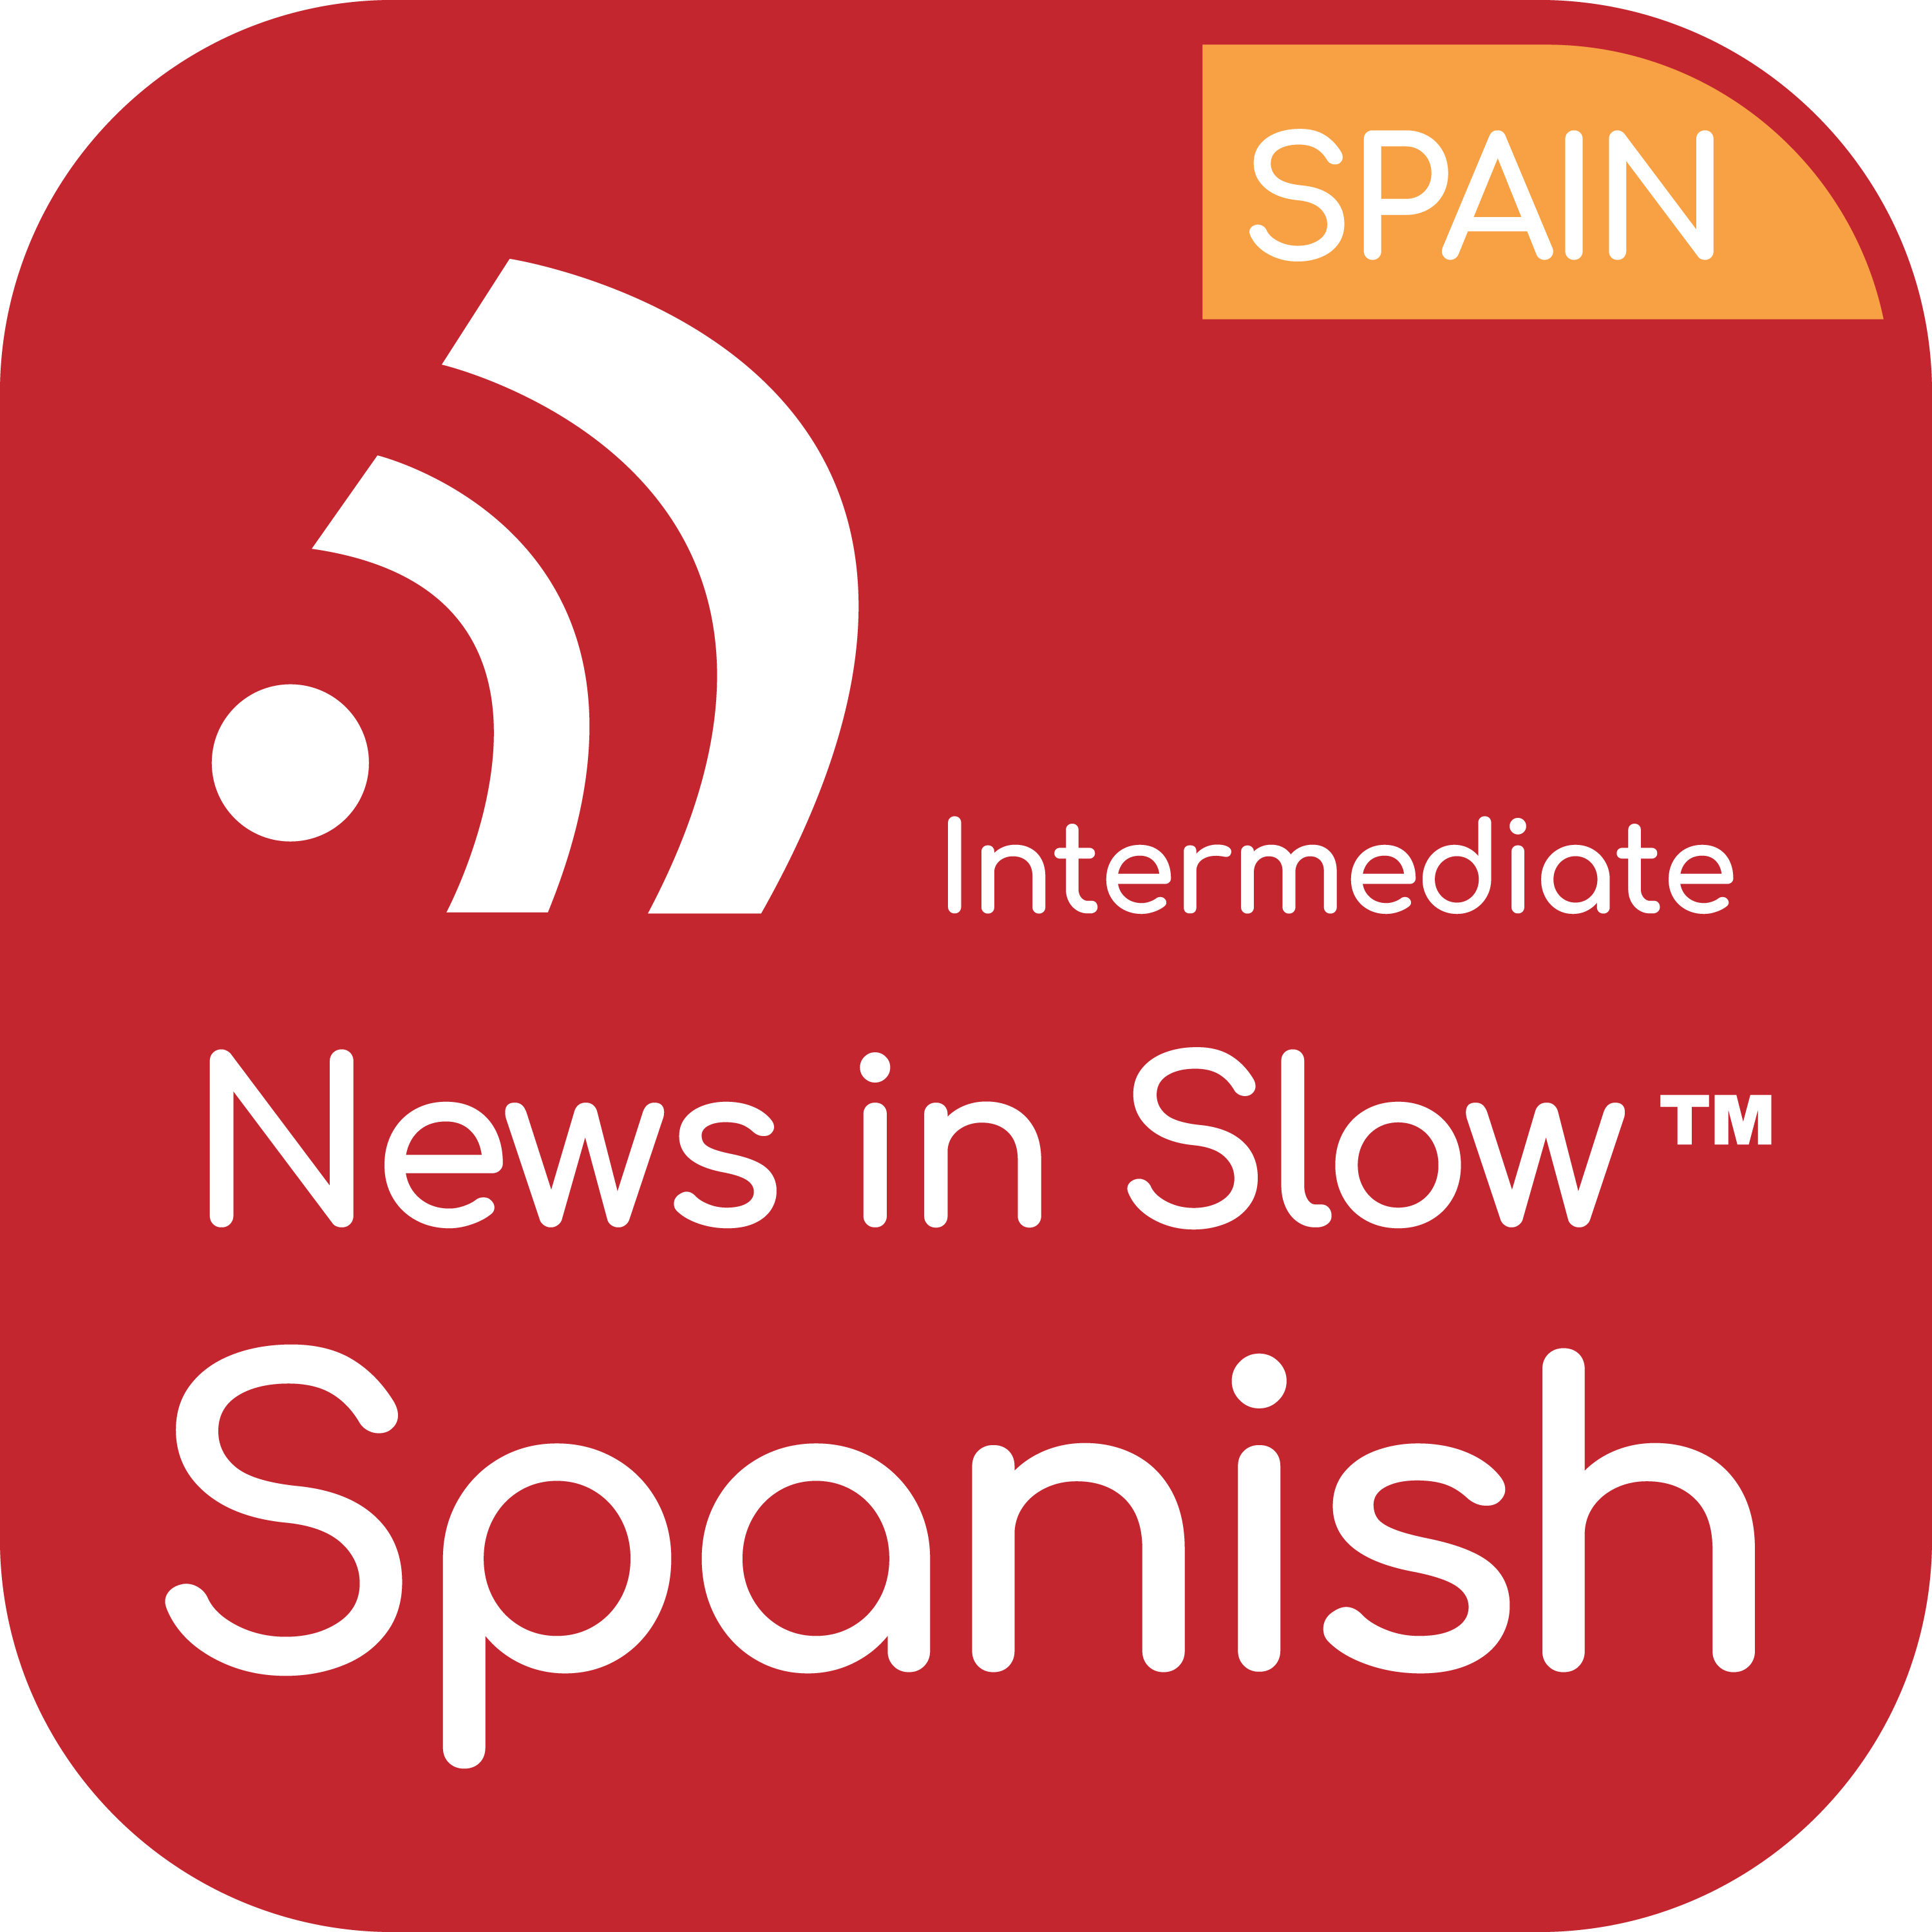 News in Slow Spanish - #629 - Intermediate Spanish Weekly Program